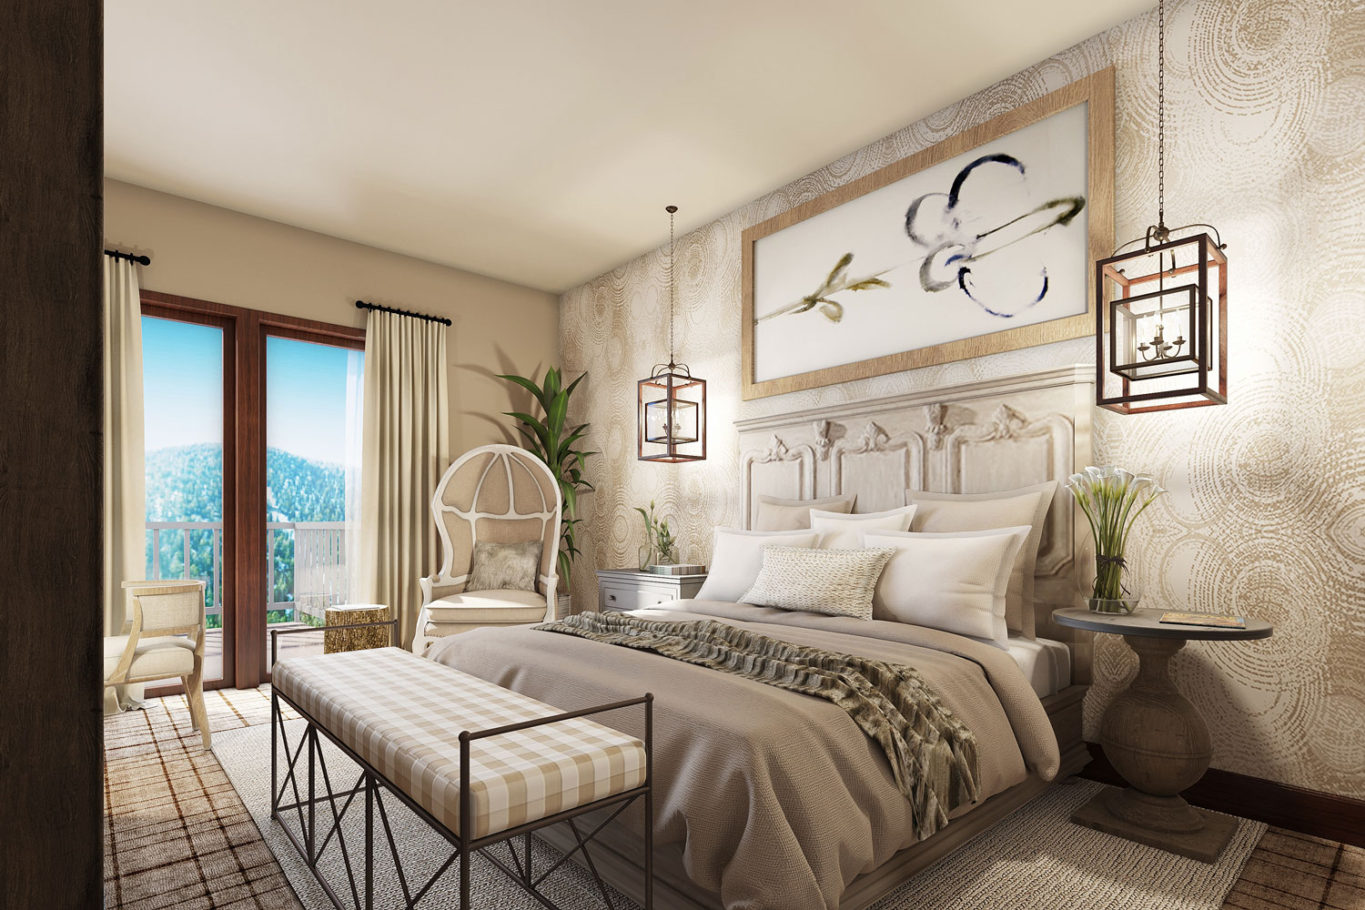 Zalanta Bedroom Plan by Talie Jane Interiors